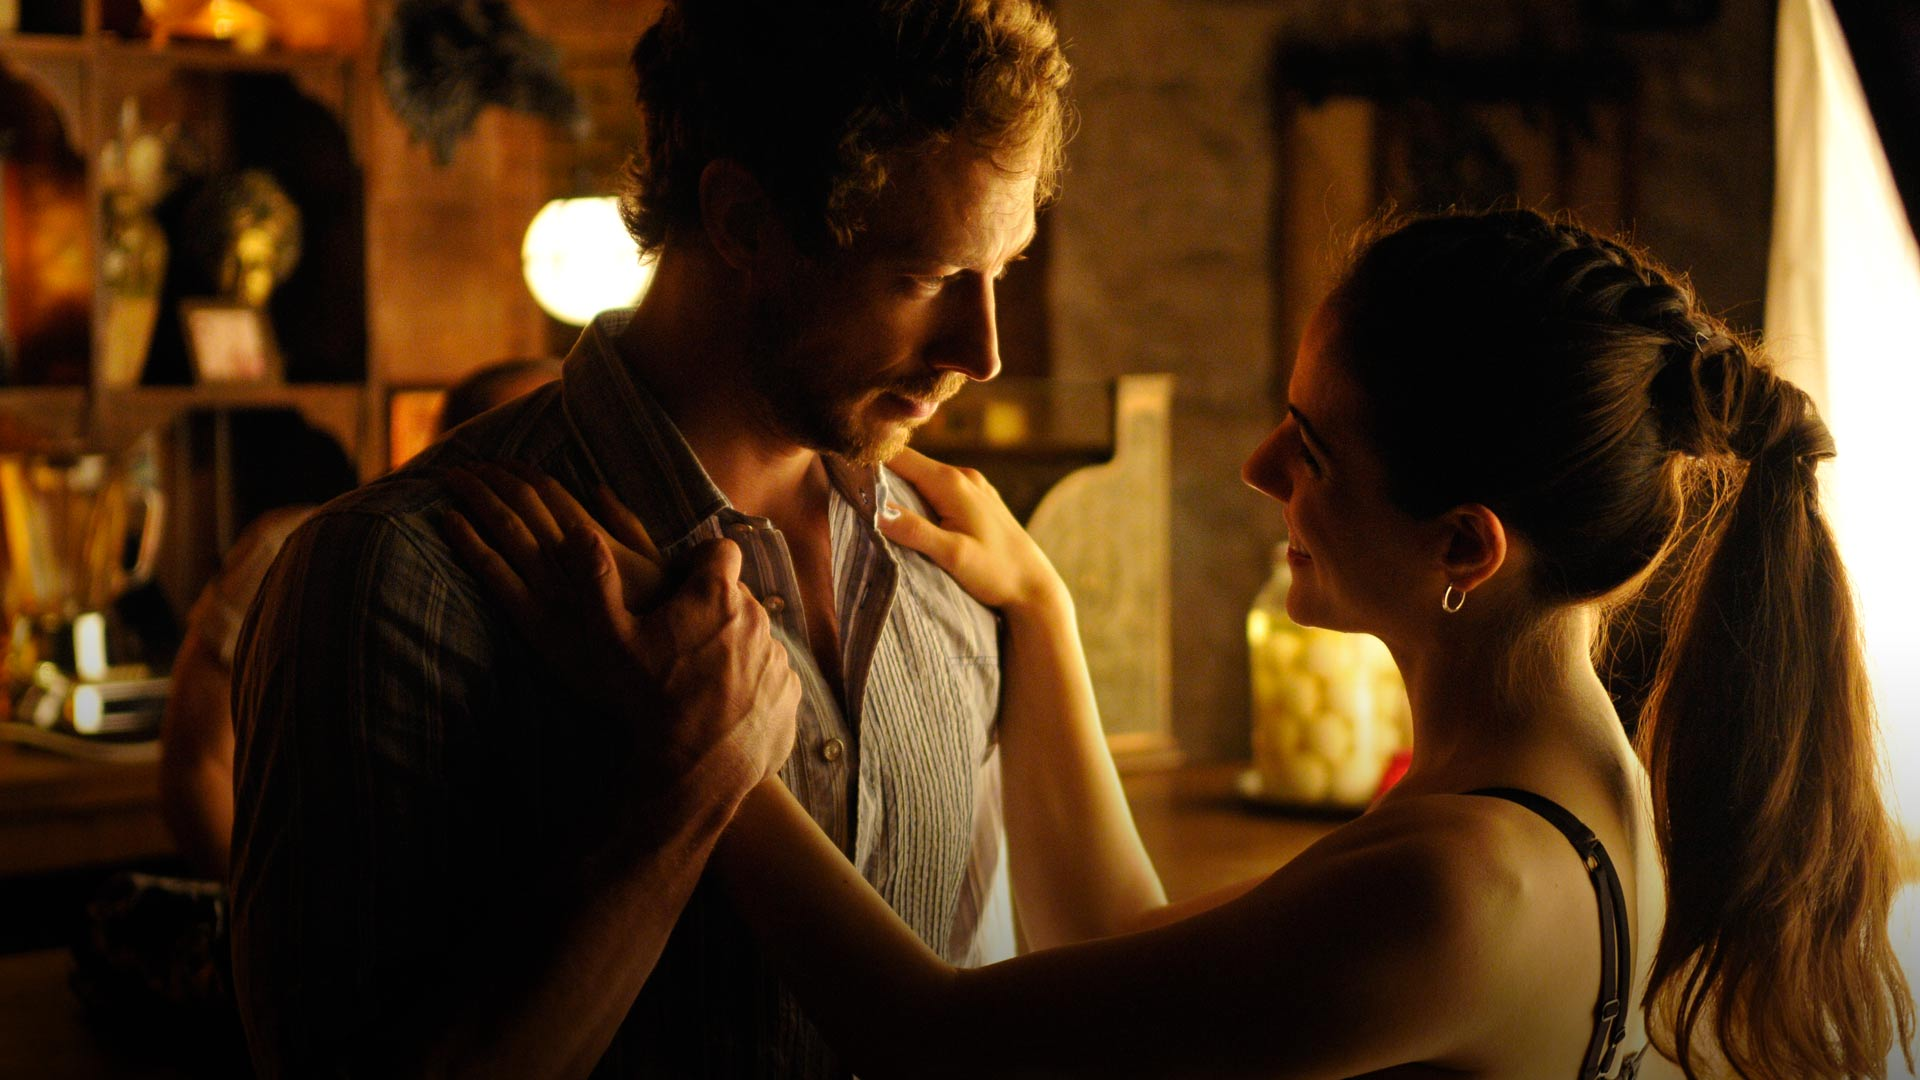 lost girl bo and dyson relationship test